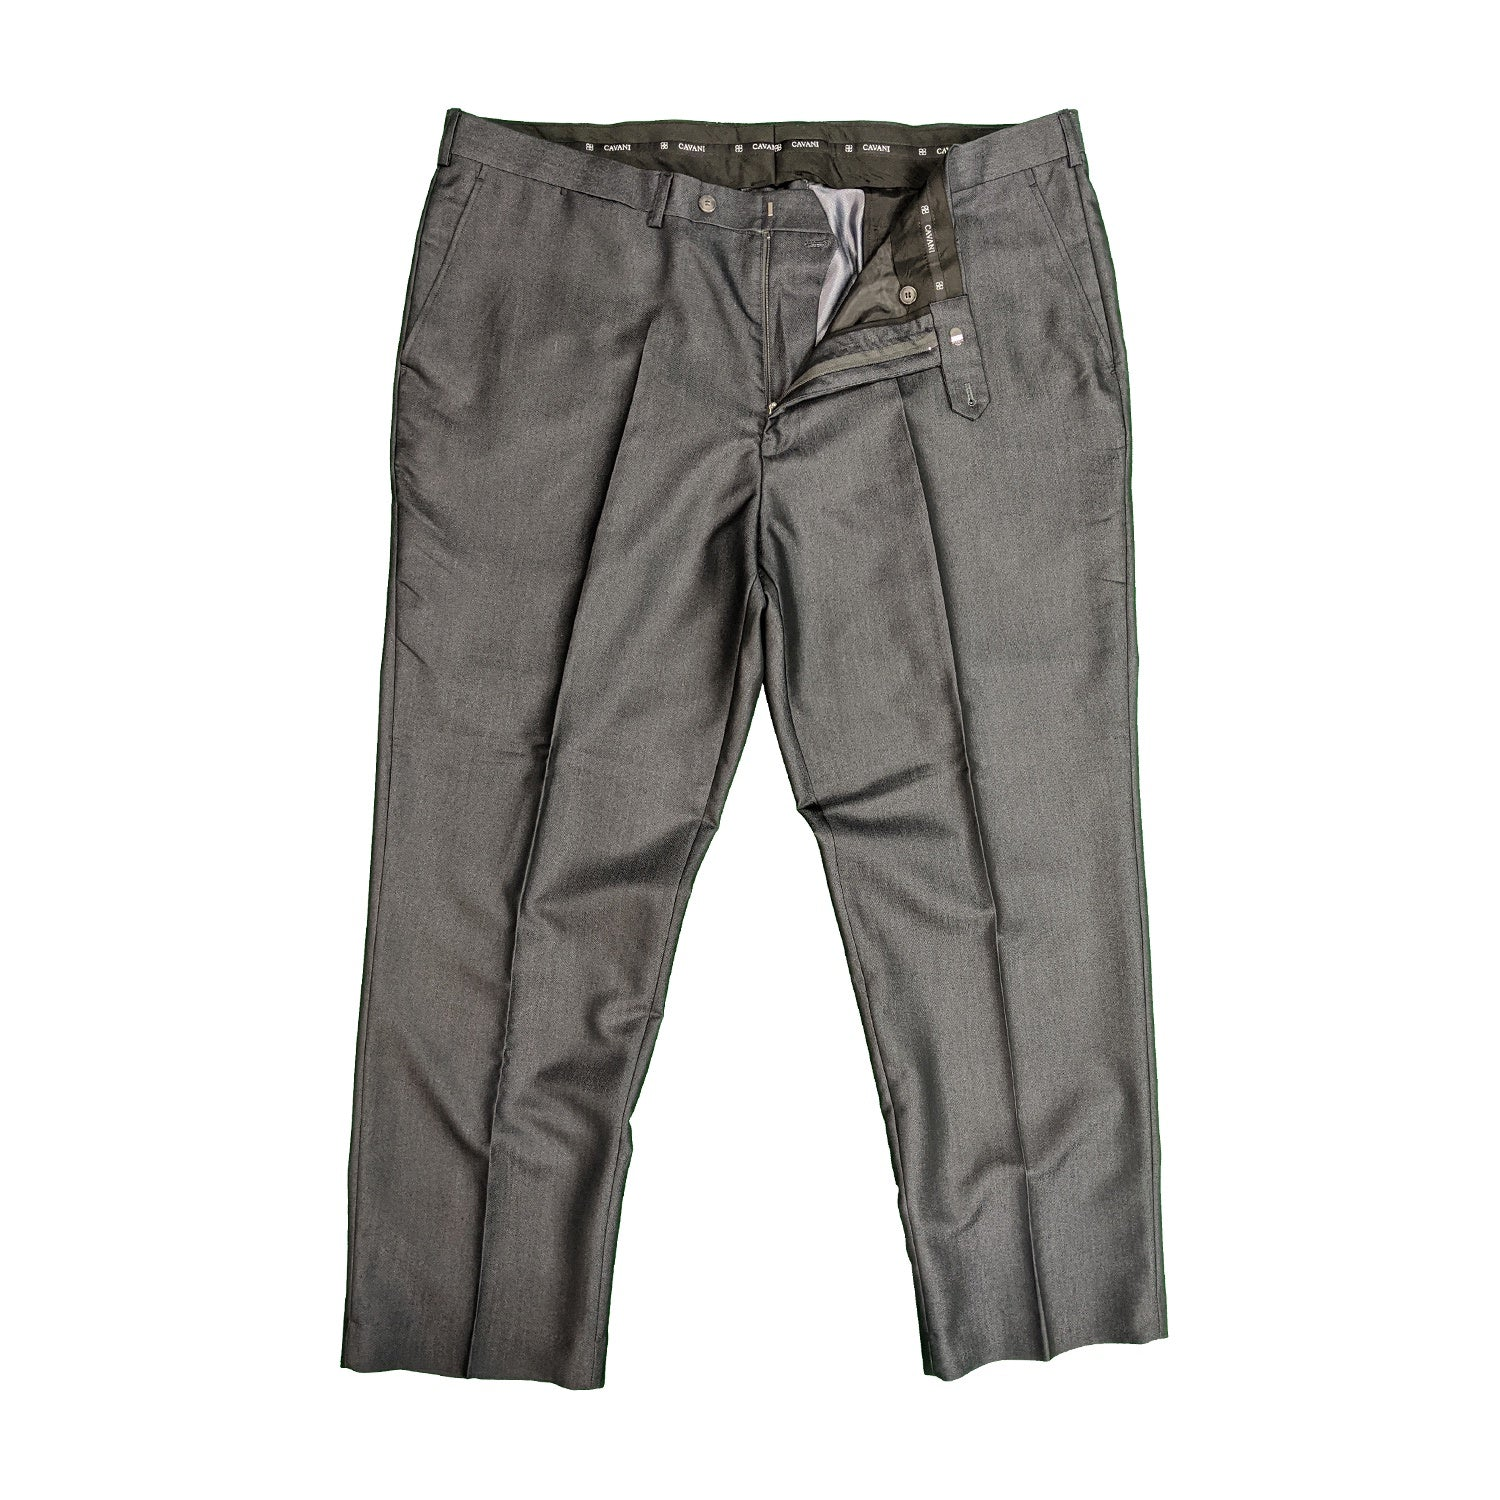 Cavani Suit Trousers - New Alben - Grey 1